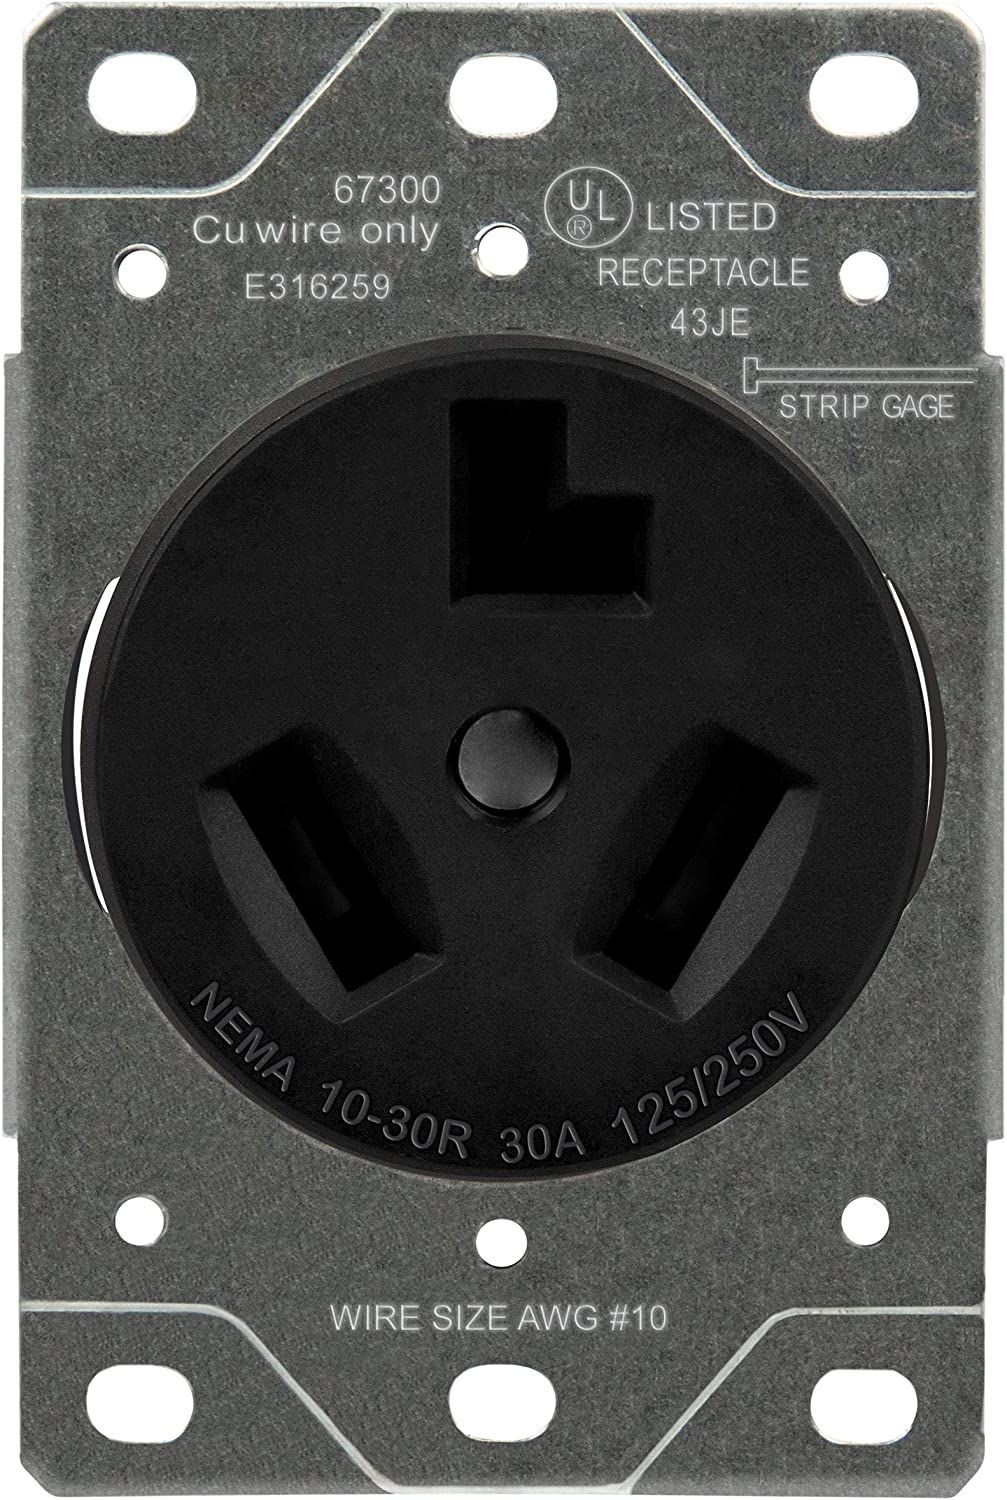 ENERLITES 30 Amp Dryer Receptacle Outlet for Electric Dryers, NEMA 10-30R, Residential Commercial Industrial Grade, Outdoor/Indoor, 3-Pole, 3 Wire, No Ground Contact, (10,8,6,4) AWG, UL Listed